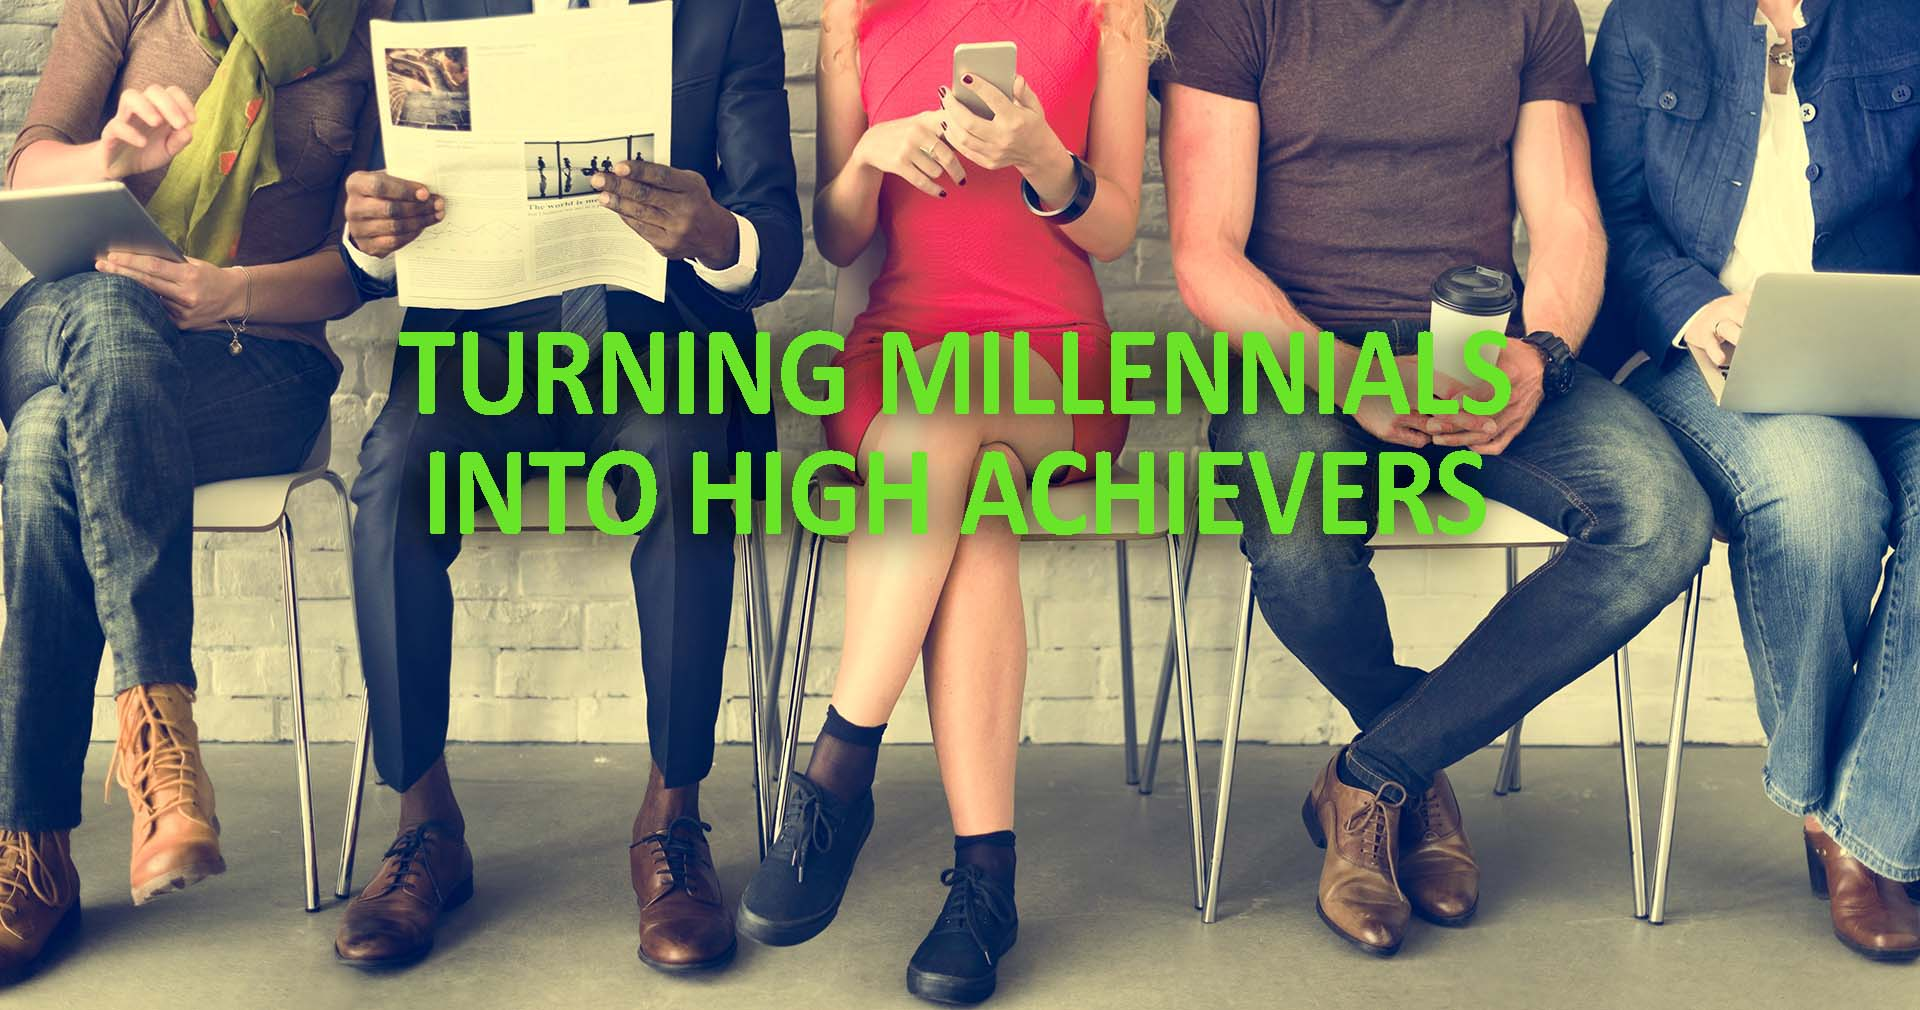 Frontrunner High Level Networking - TURNING MILLENNIALS INTO HIGH ACHIEVERS